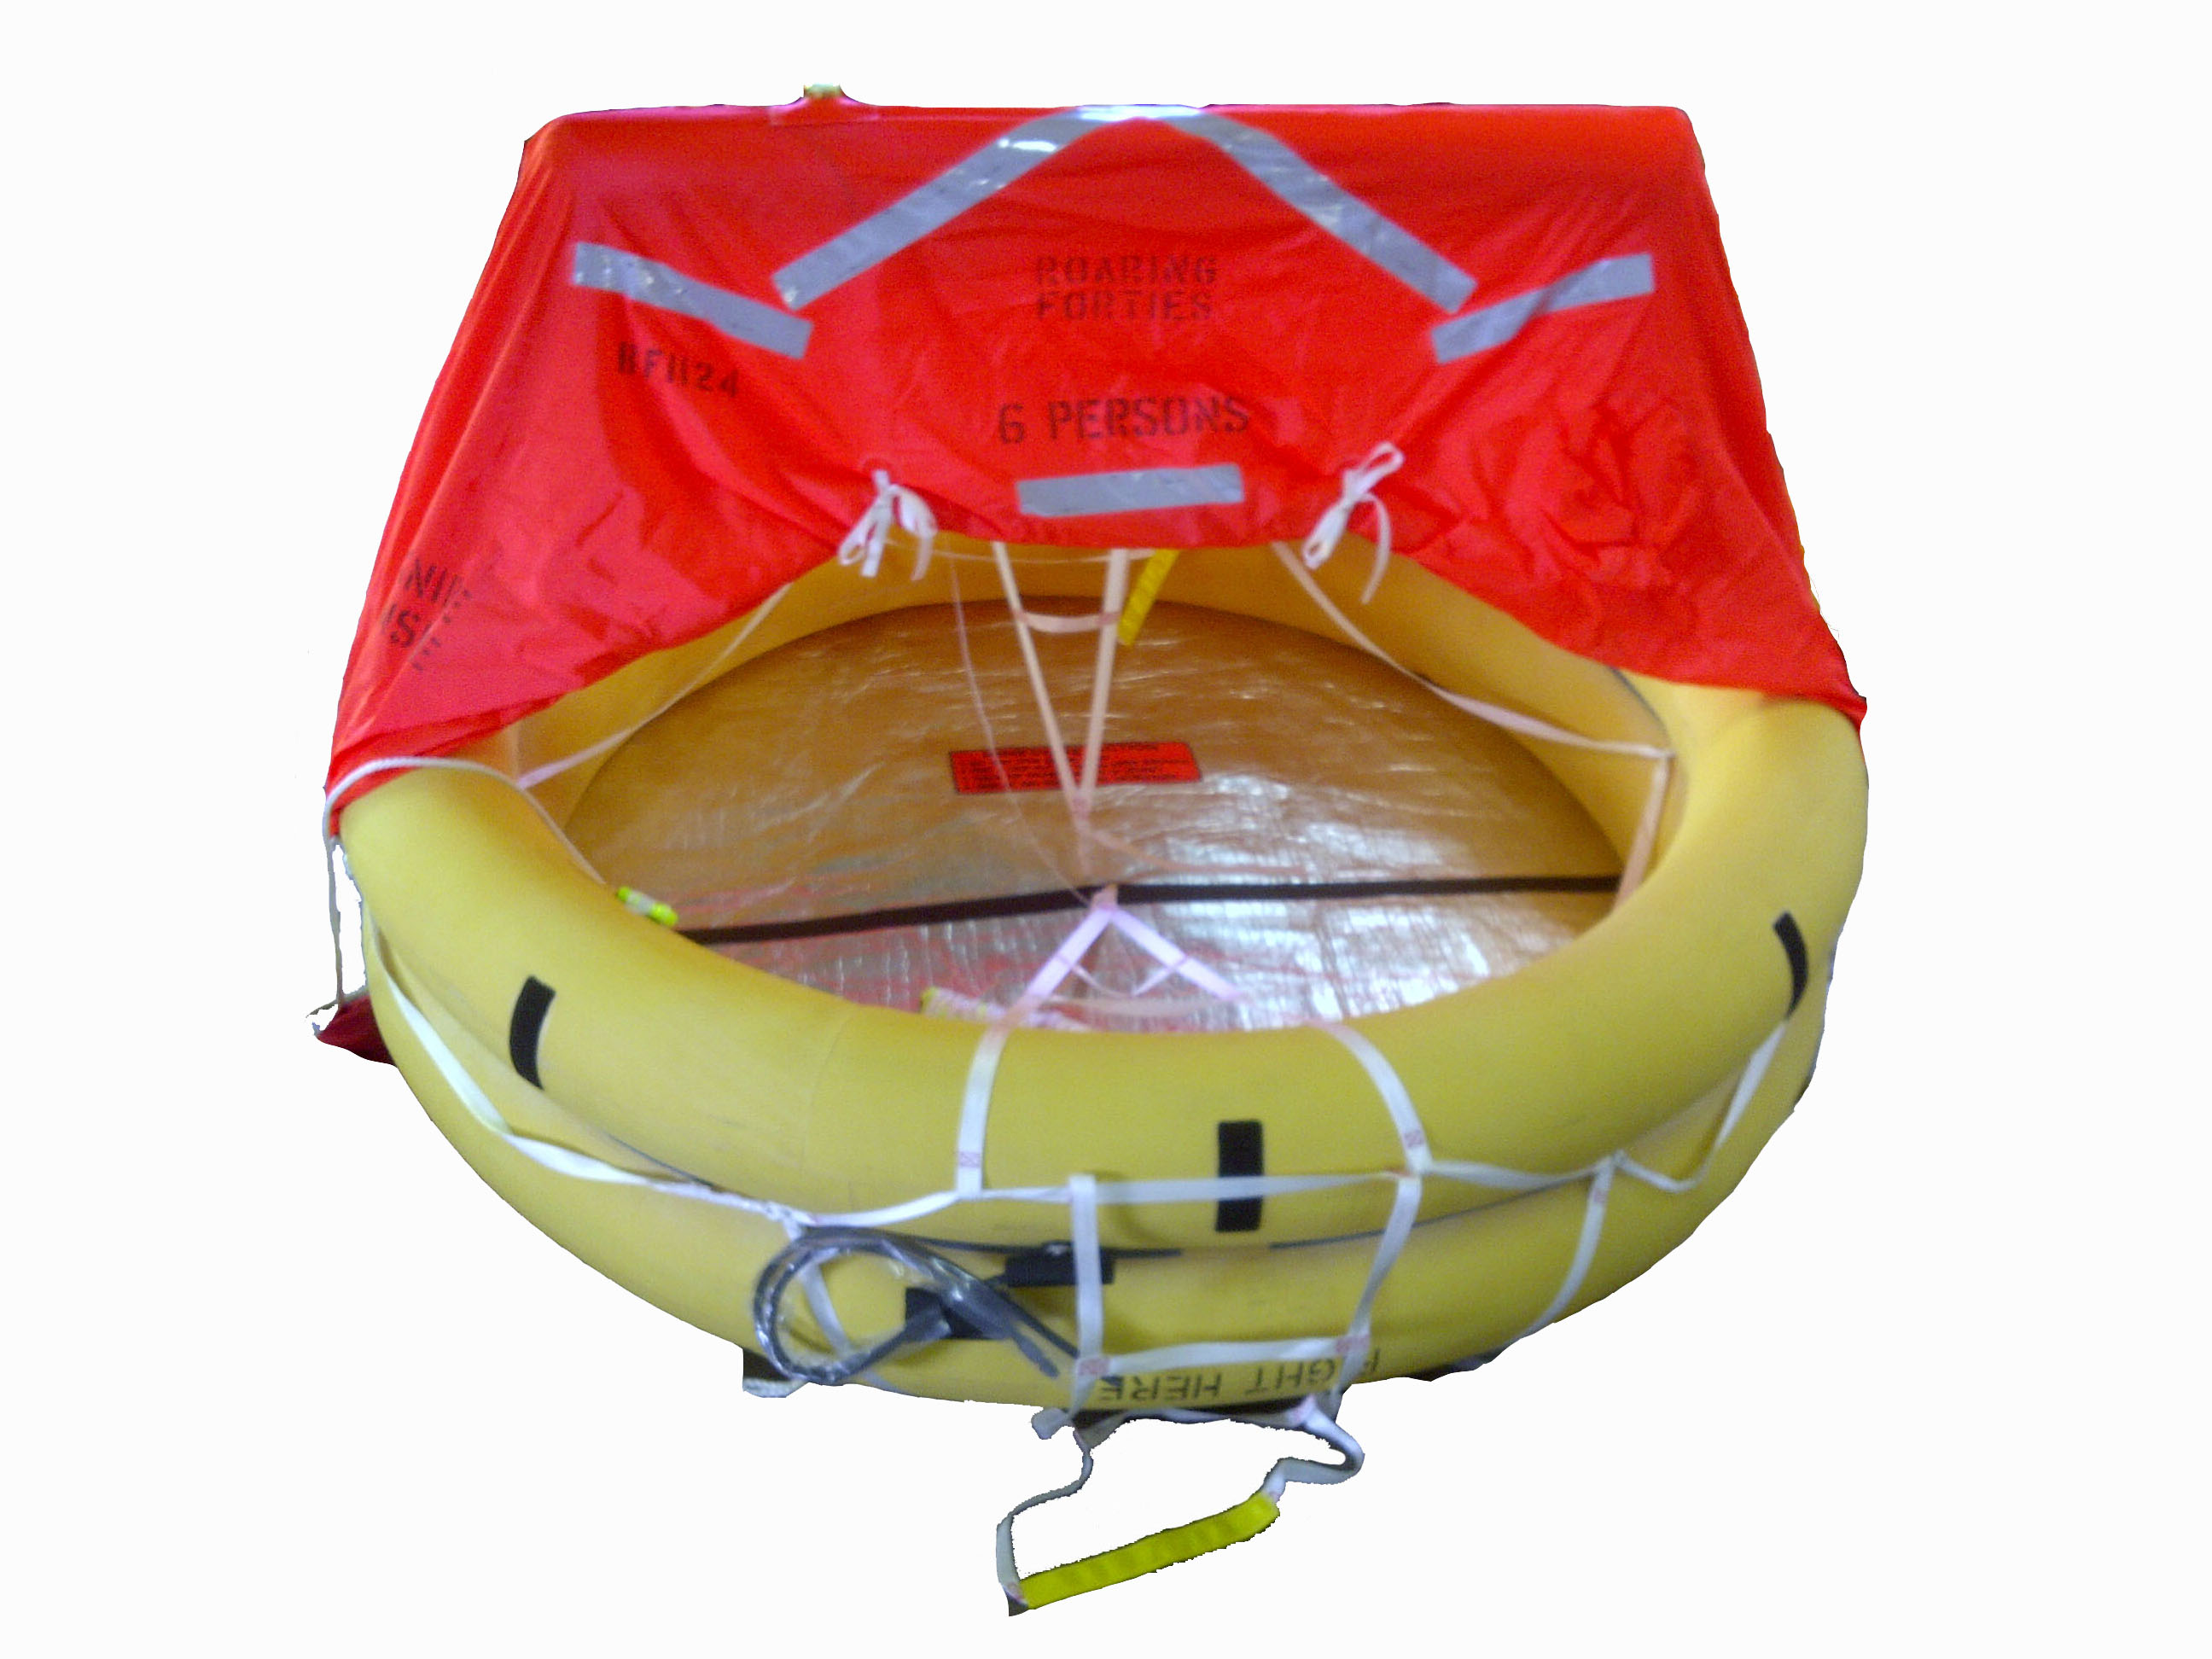 FORCE 9000 Series Yachting Australia Pack